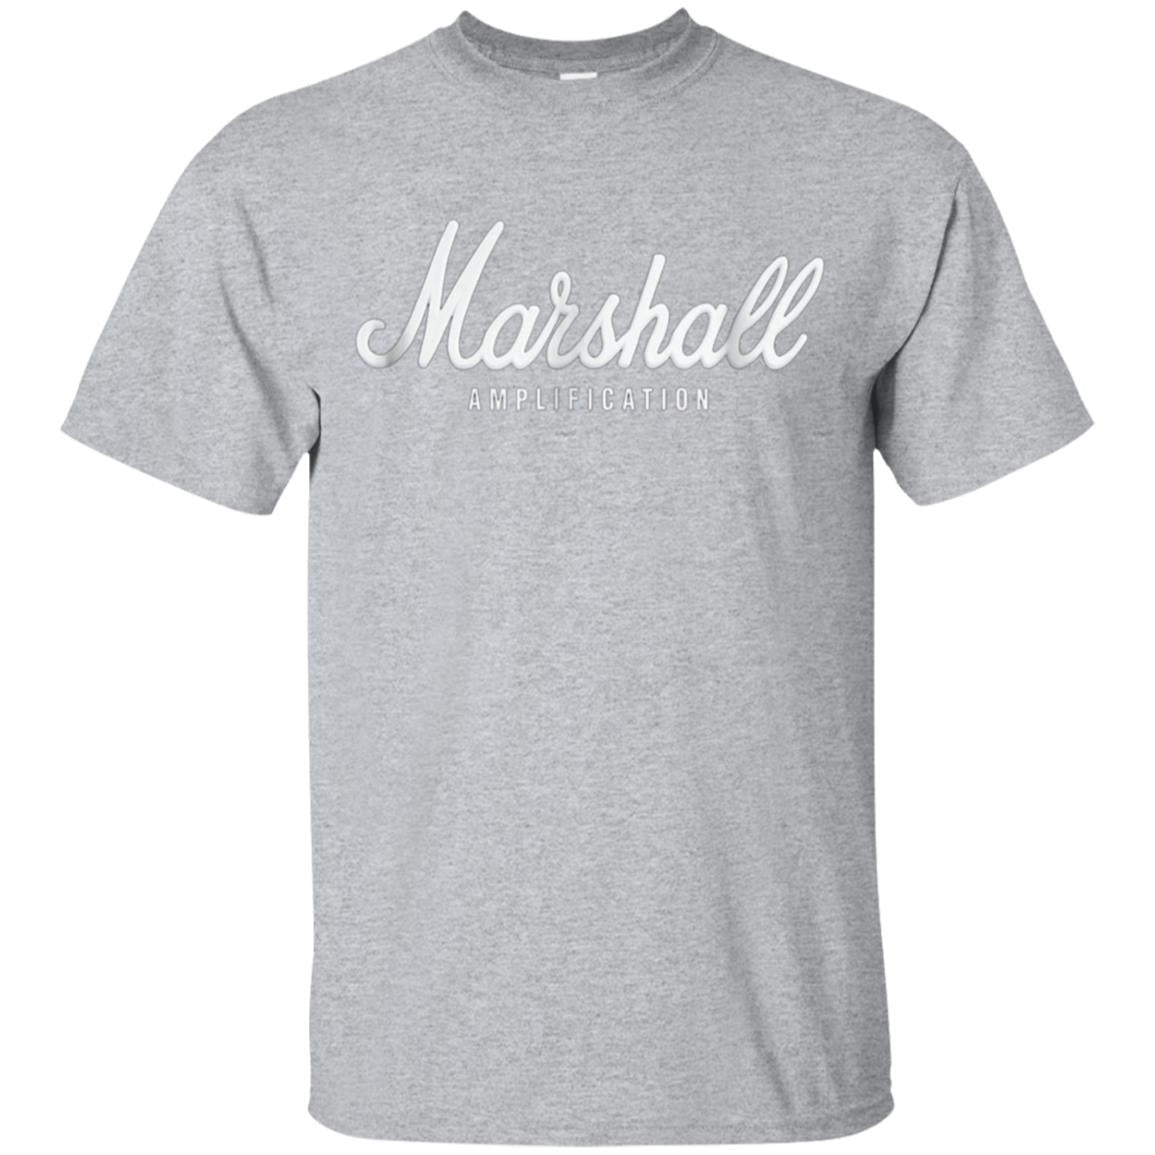 Marshall Amplification Shirt 99promocode